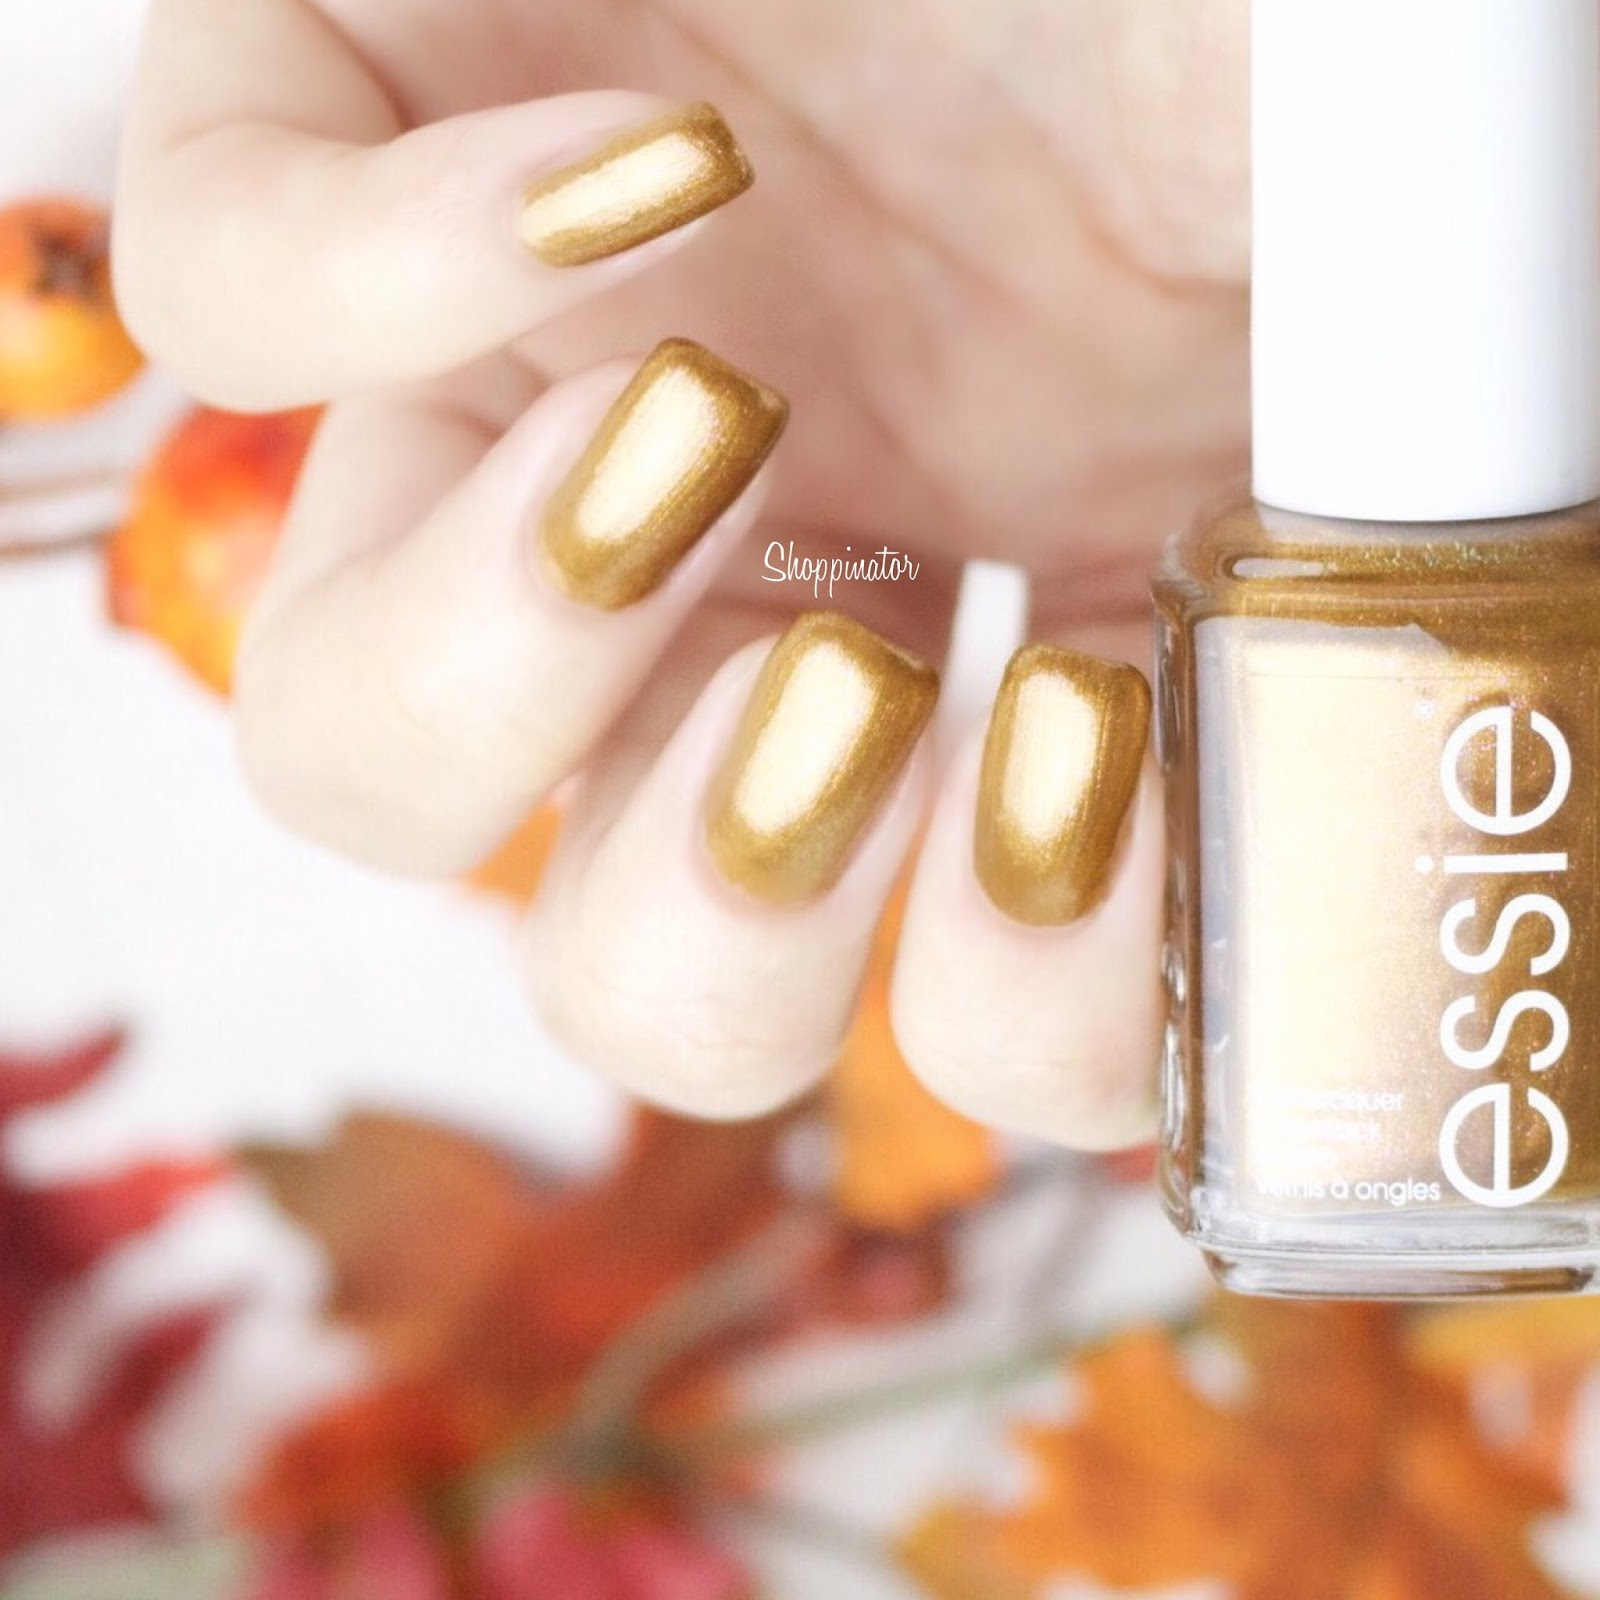 Essie-Shoppinator-Herbst-LE-limitiert-Essieherbst-2015-Essieherbstparade-Shoppinator-Fall-Essiefall-Autumn-Essieliebe-leggy-legend-leggylegend-color-binge-colorbinge-with-the-band-withtheband-in-the-lobby-inthelobby-bellbottomblues-bell-bottom-blues-frocknroll-frock-n-roll